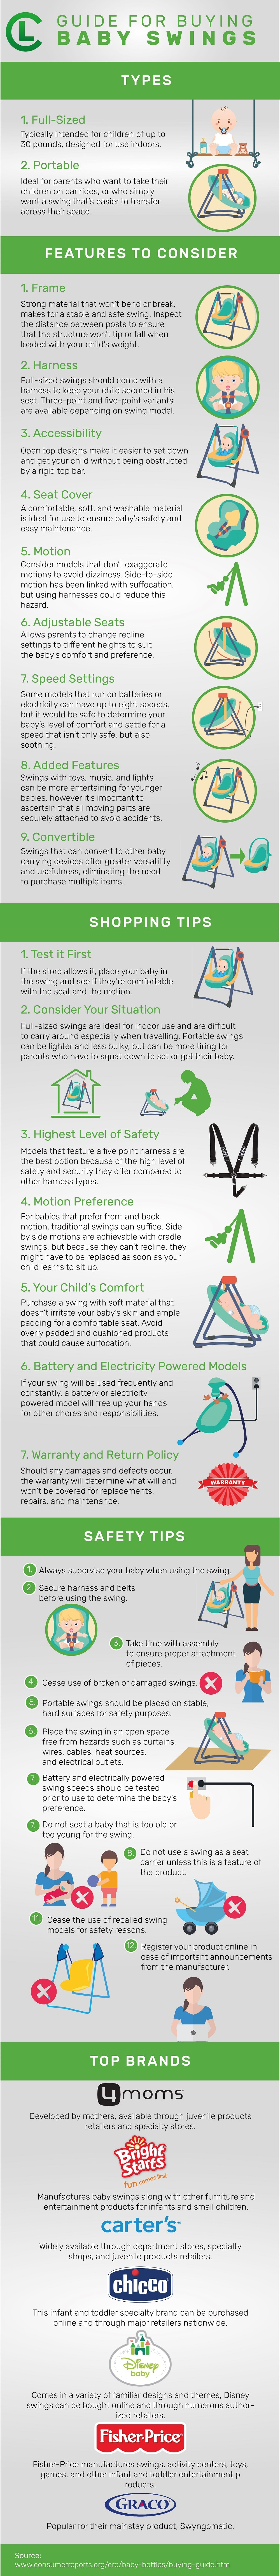 Guide For Buying Baby Swings Infographic